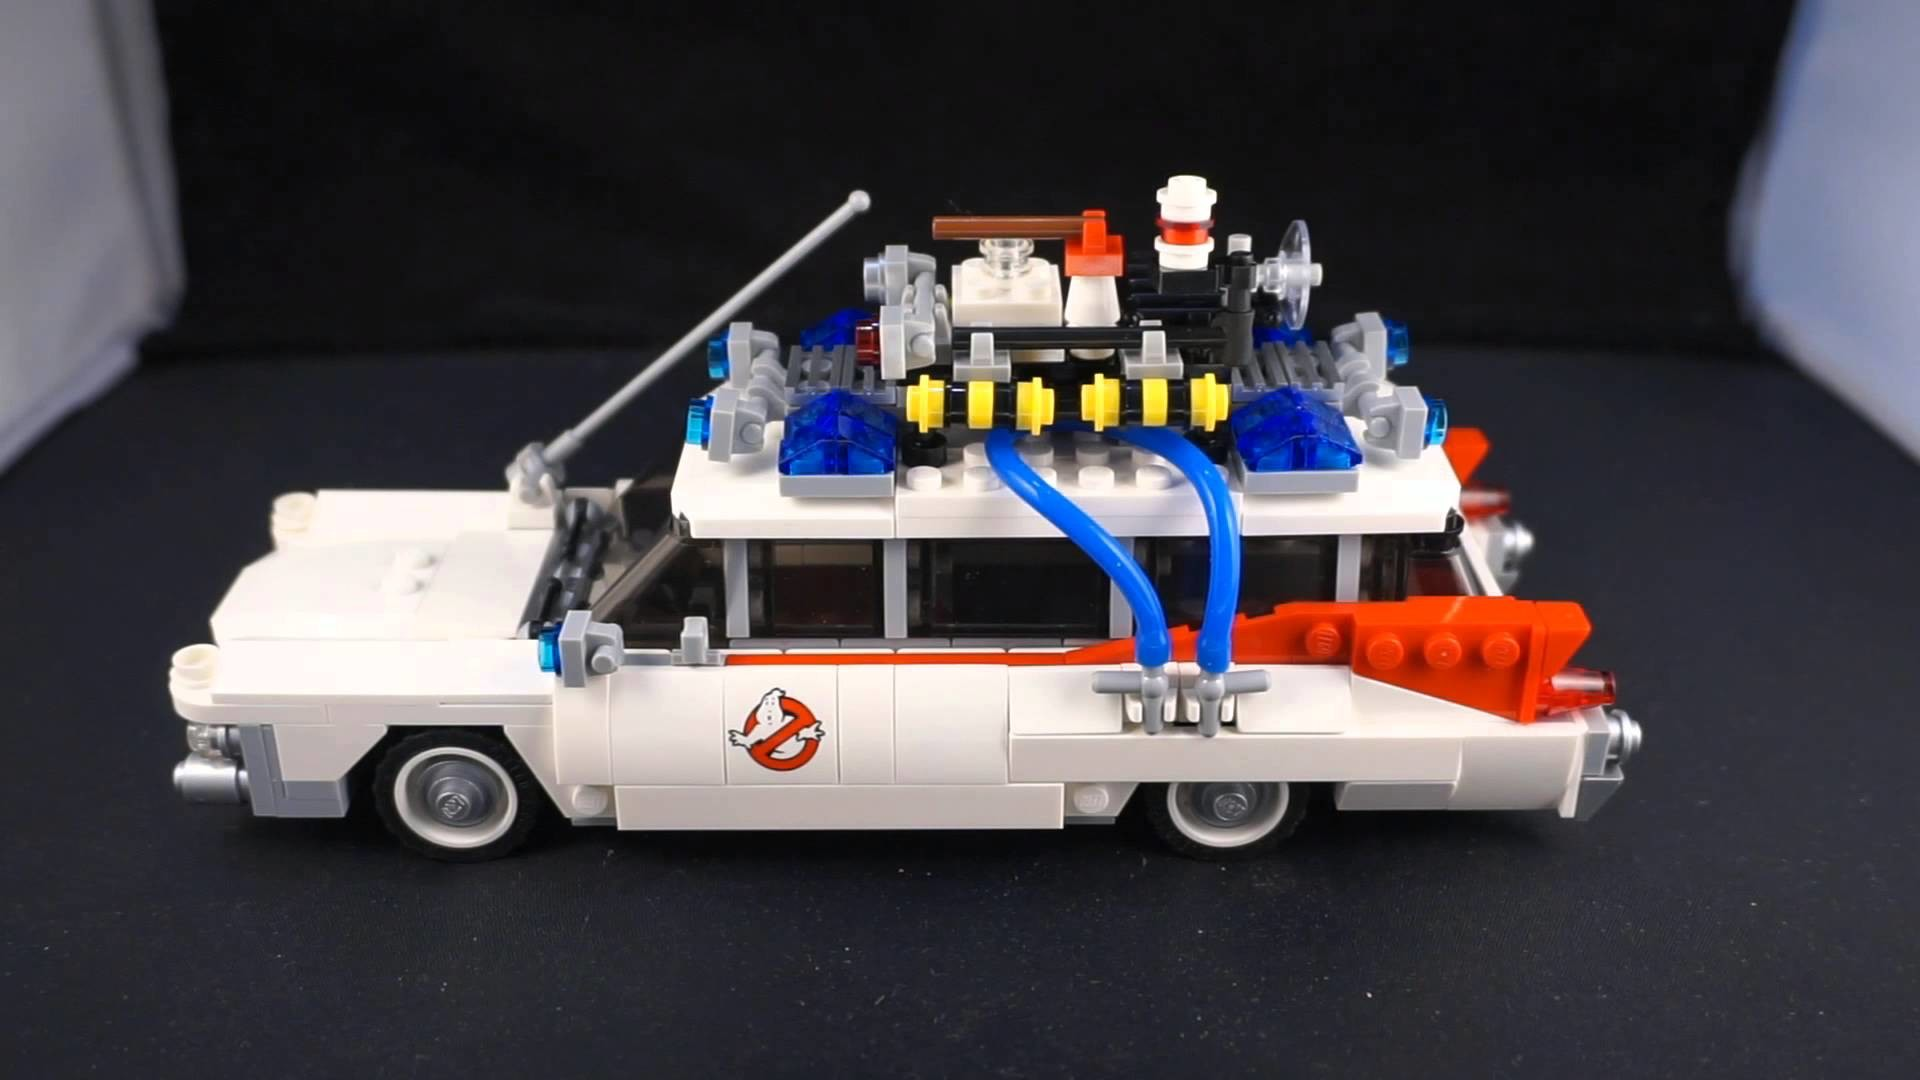 New Ecto 1 Wallpapers 65 Images Lego 75828 Ampamp 2 Ghostbusters 1920x1080 Hot Wheels Cult Classics 43 Scale 1a Die Cast Unboxing Youtube